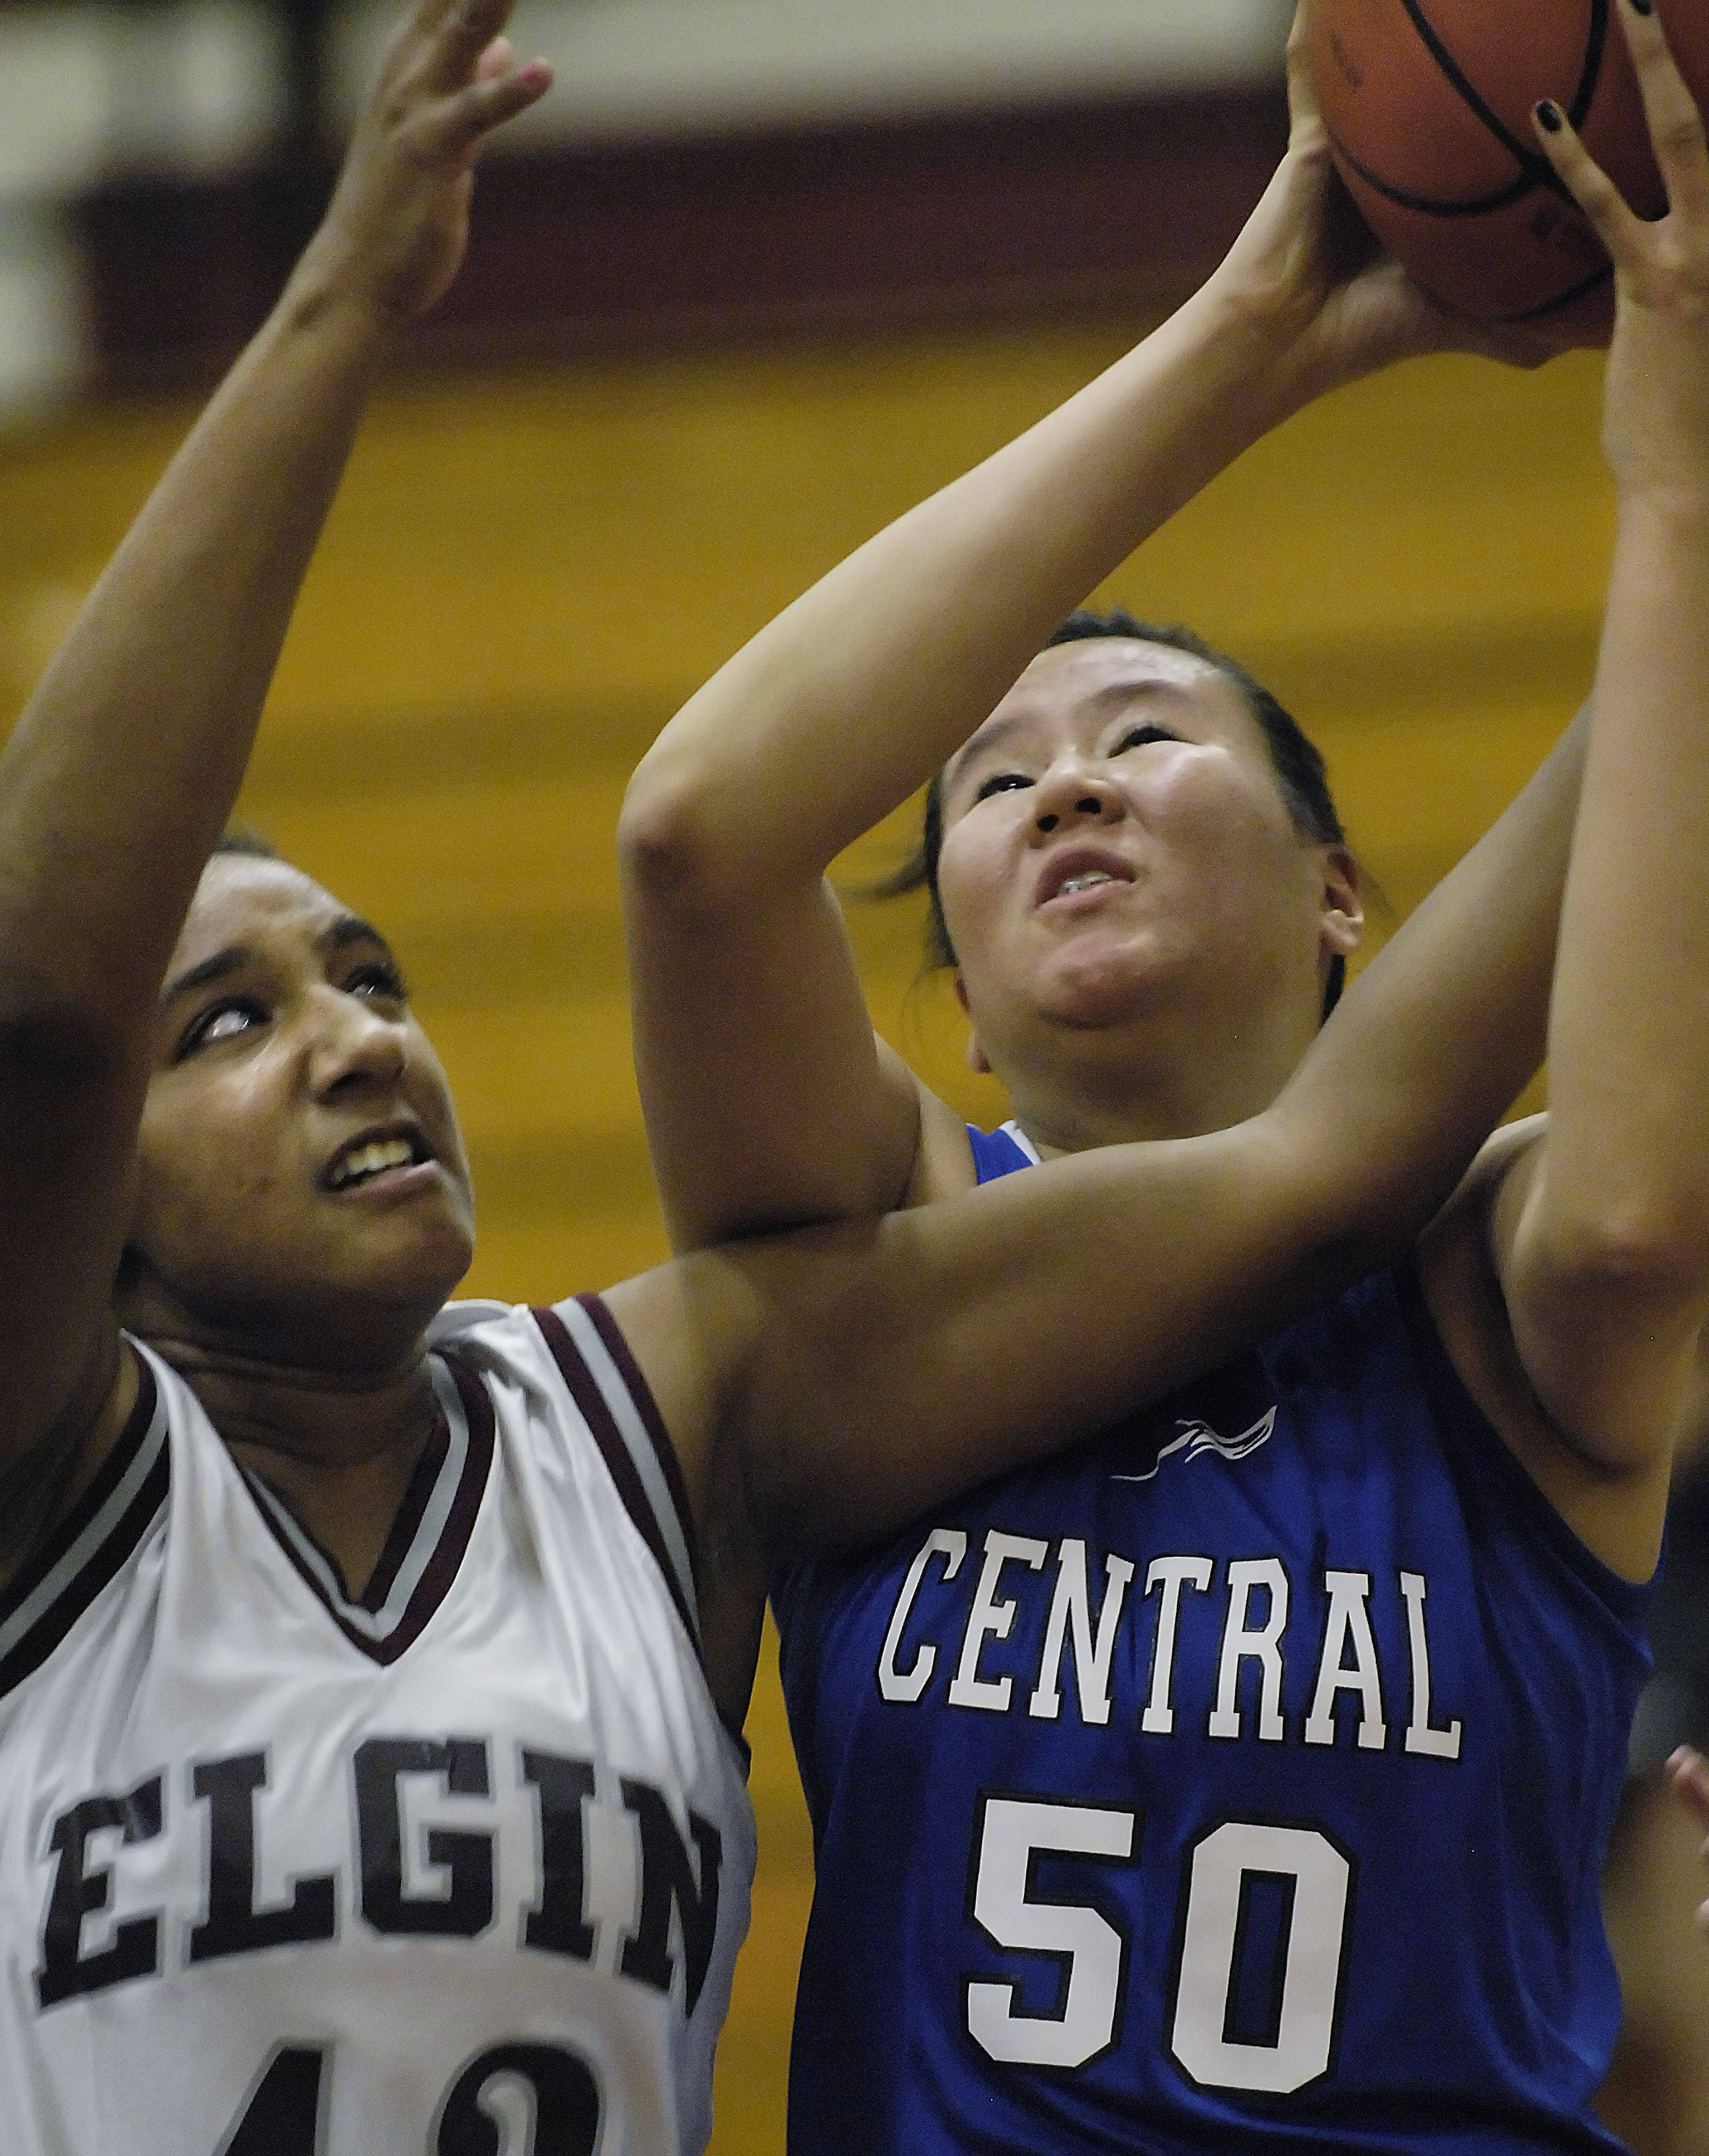 Elgin's Maria Panthier reaches for the ball held by Burlington Central's Brenda Thasavong Tuesday.